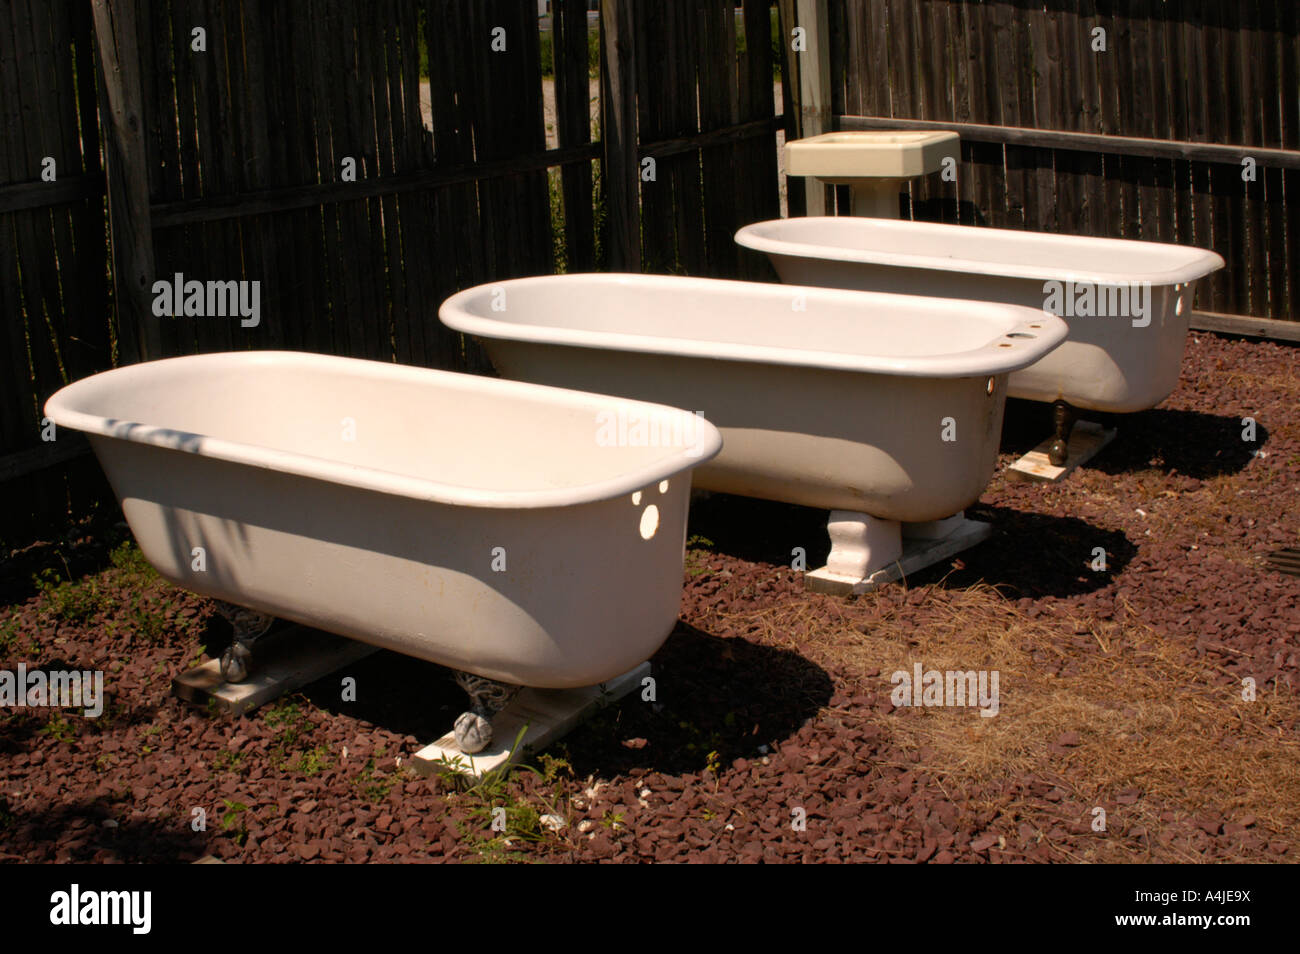 Three bathtubs outside Stock Photo: 11062357 - Alamy